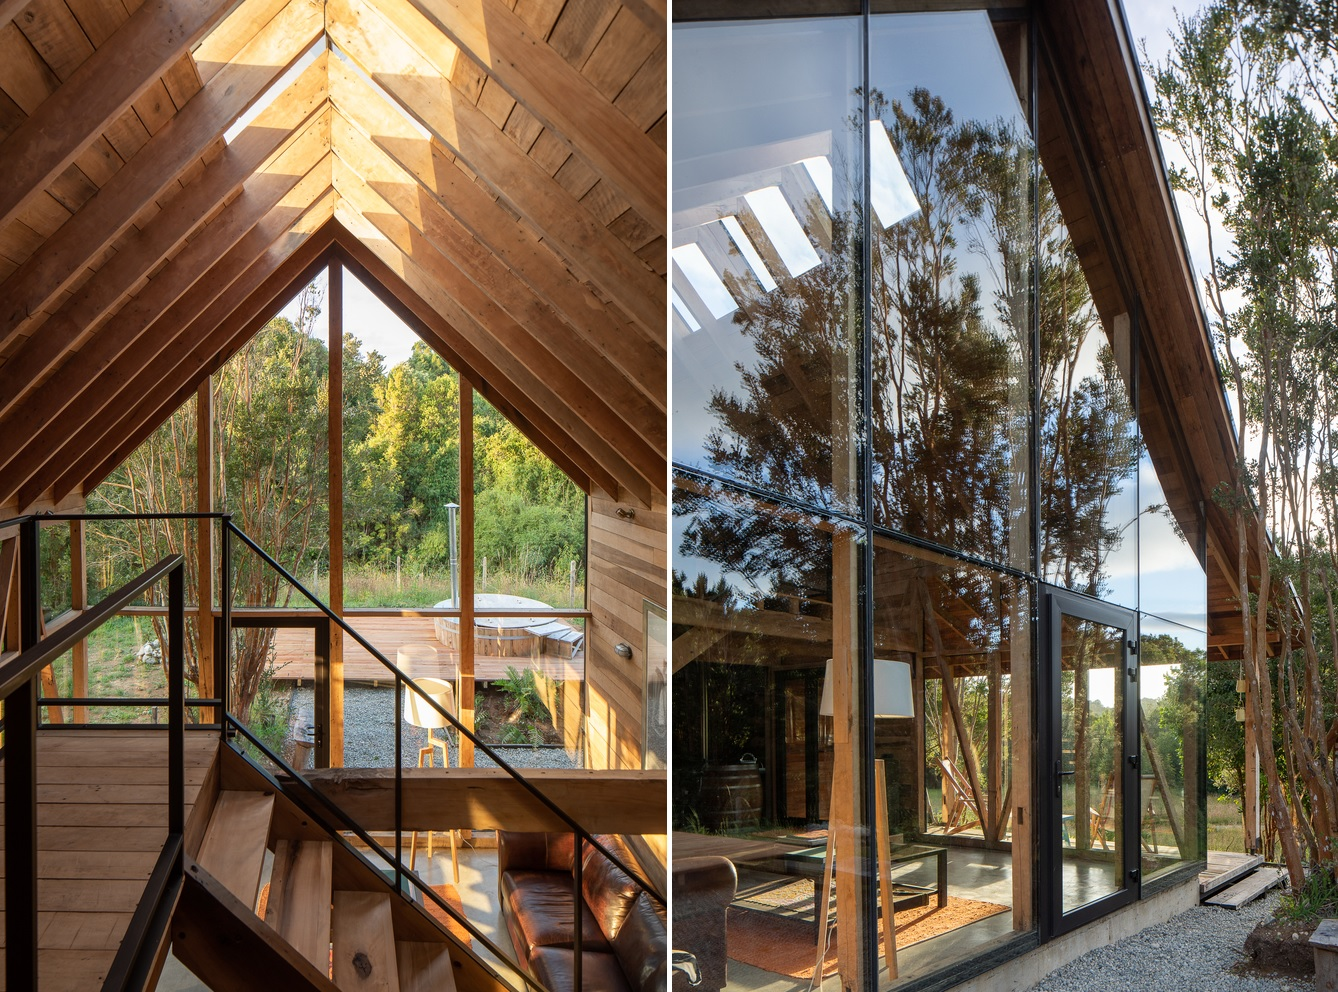 1567410255 325 modern lodge disguised as traditional using wooden shingles - Modern Lodge Disguised As Traditional Using Wooden Shingles